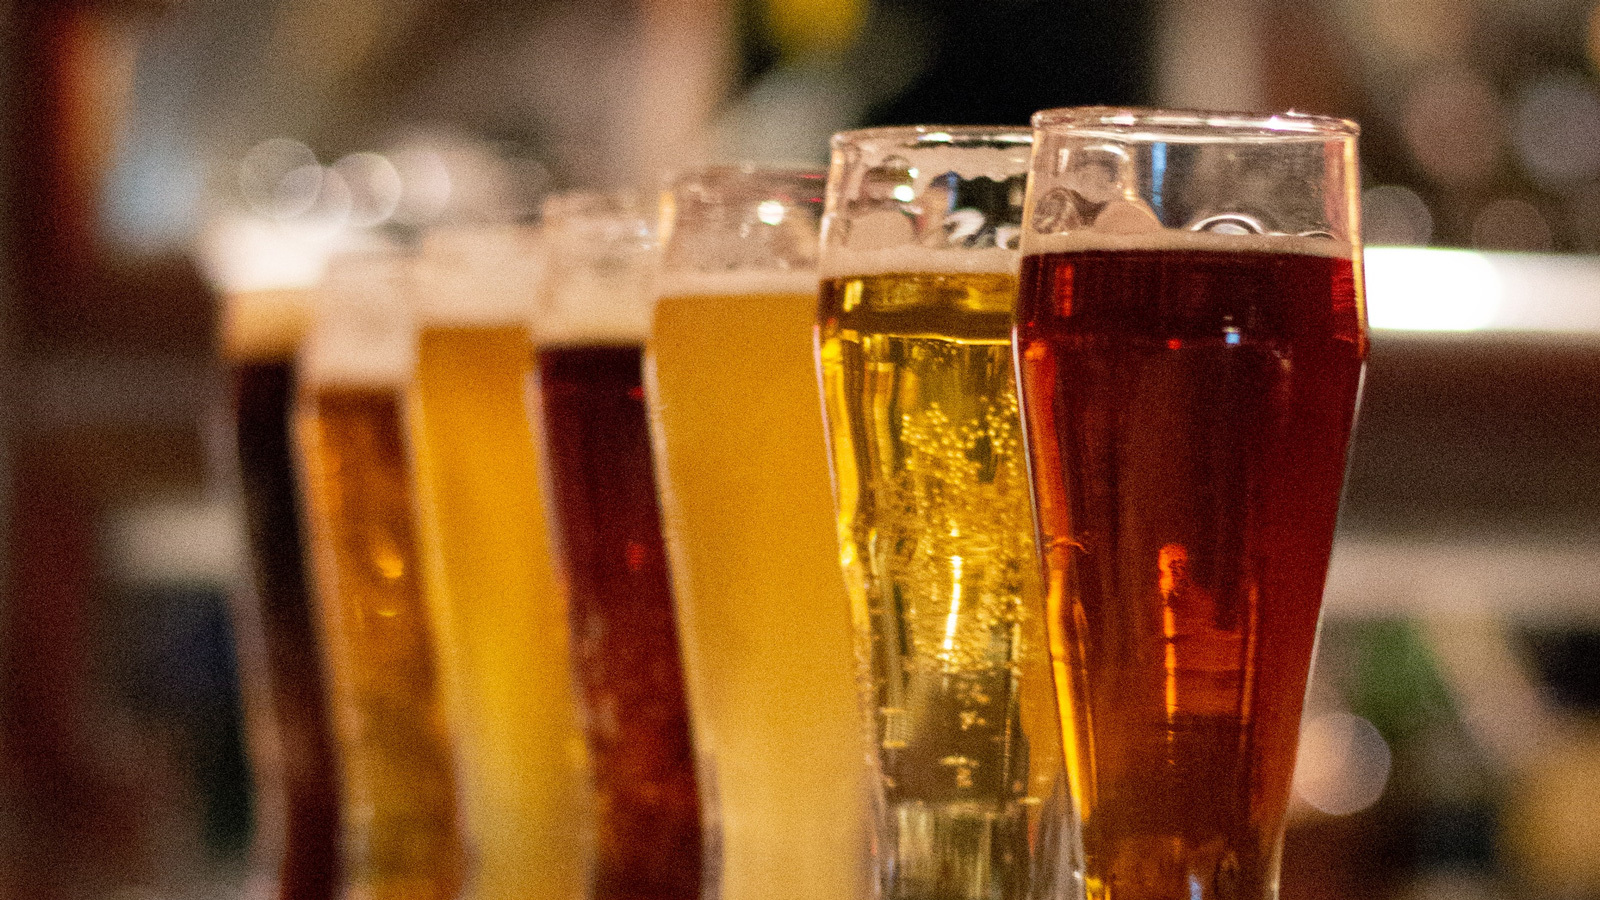 A line-up of sample-sized beers of different varieties